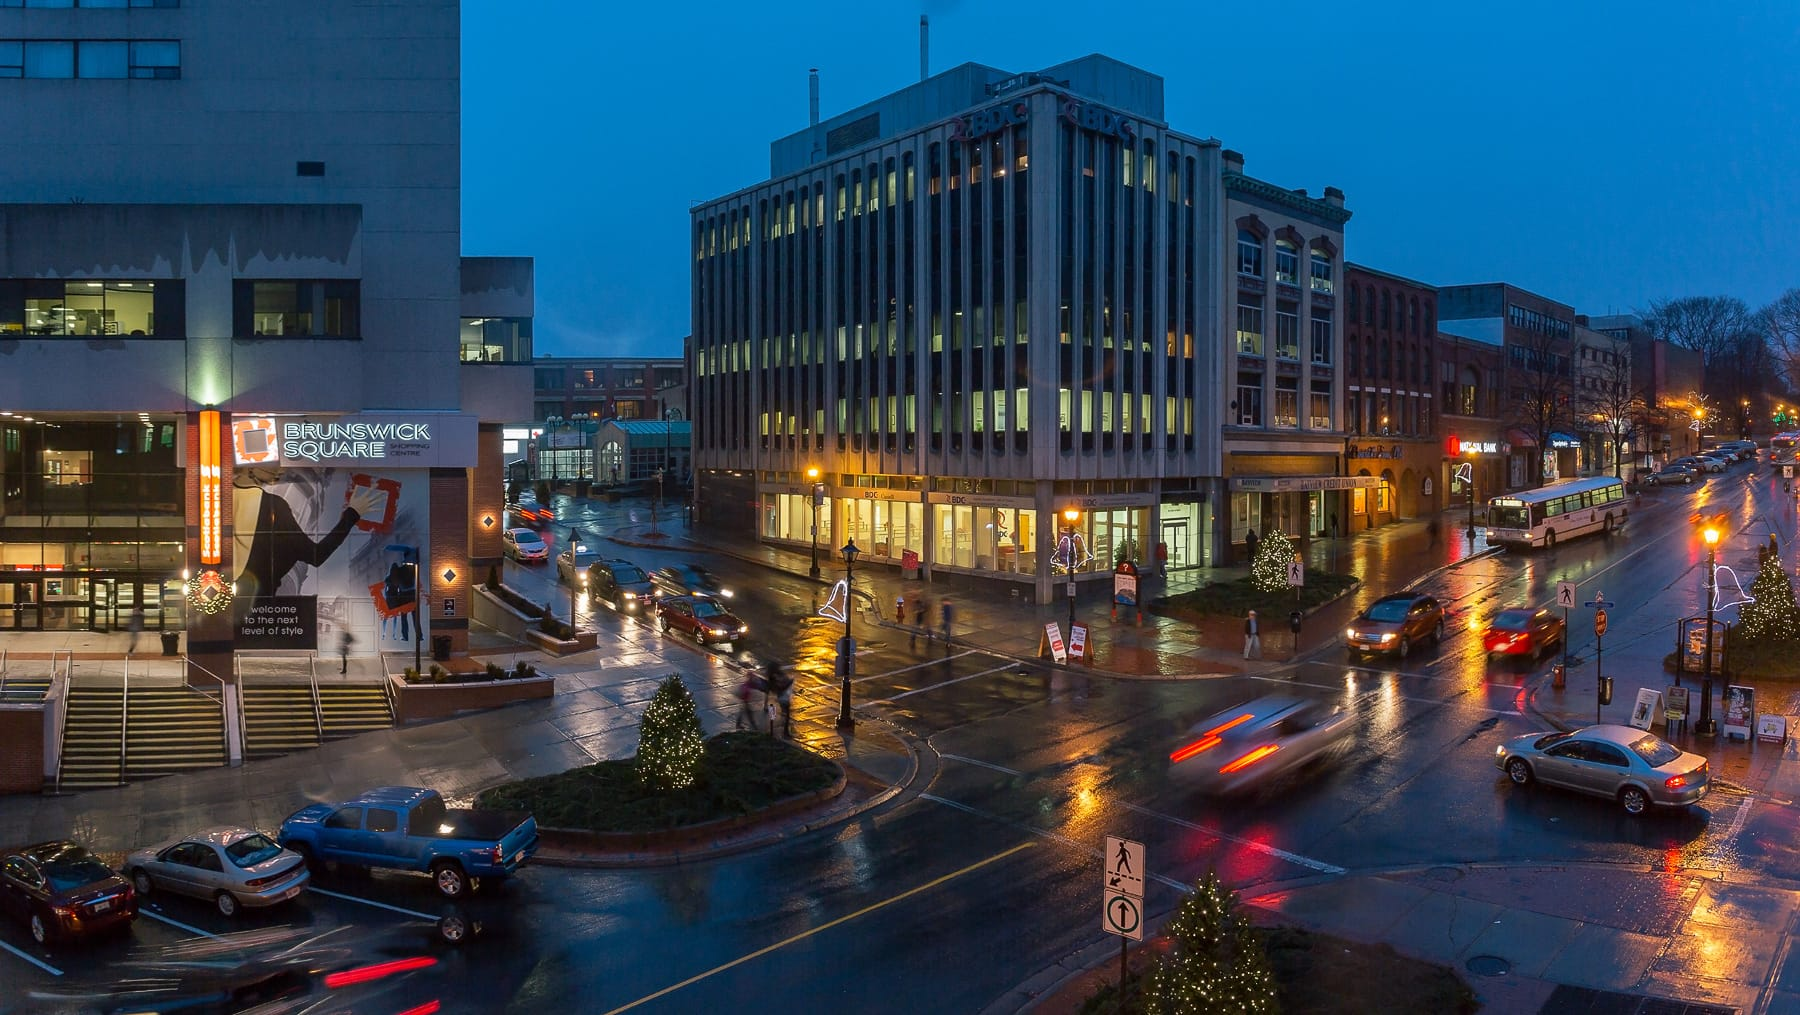 A photograph depicting Saint John Photos King Street in the Rain